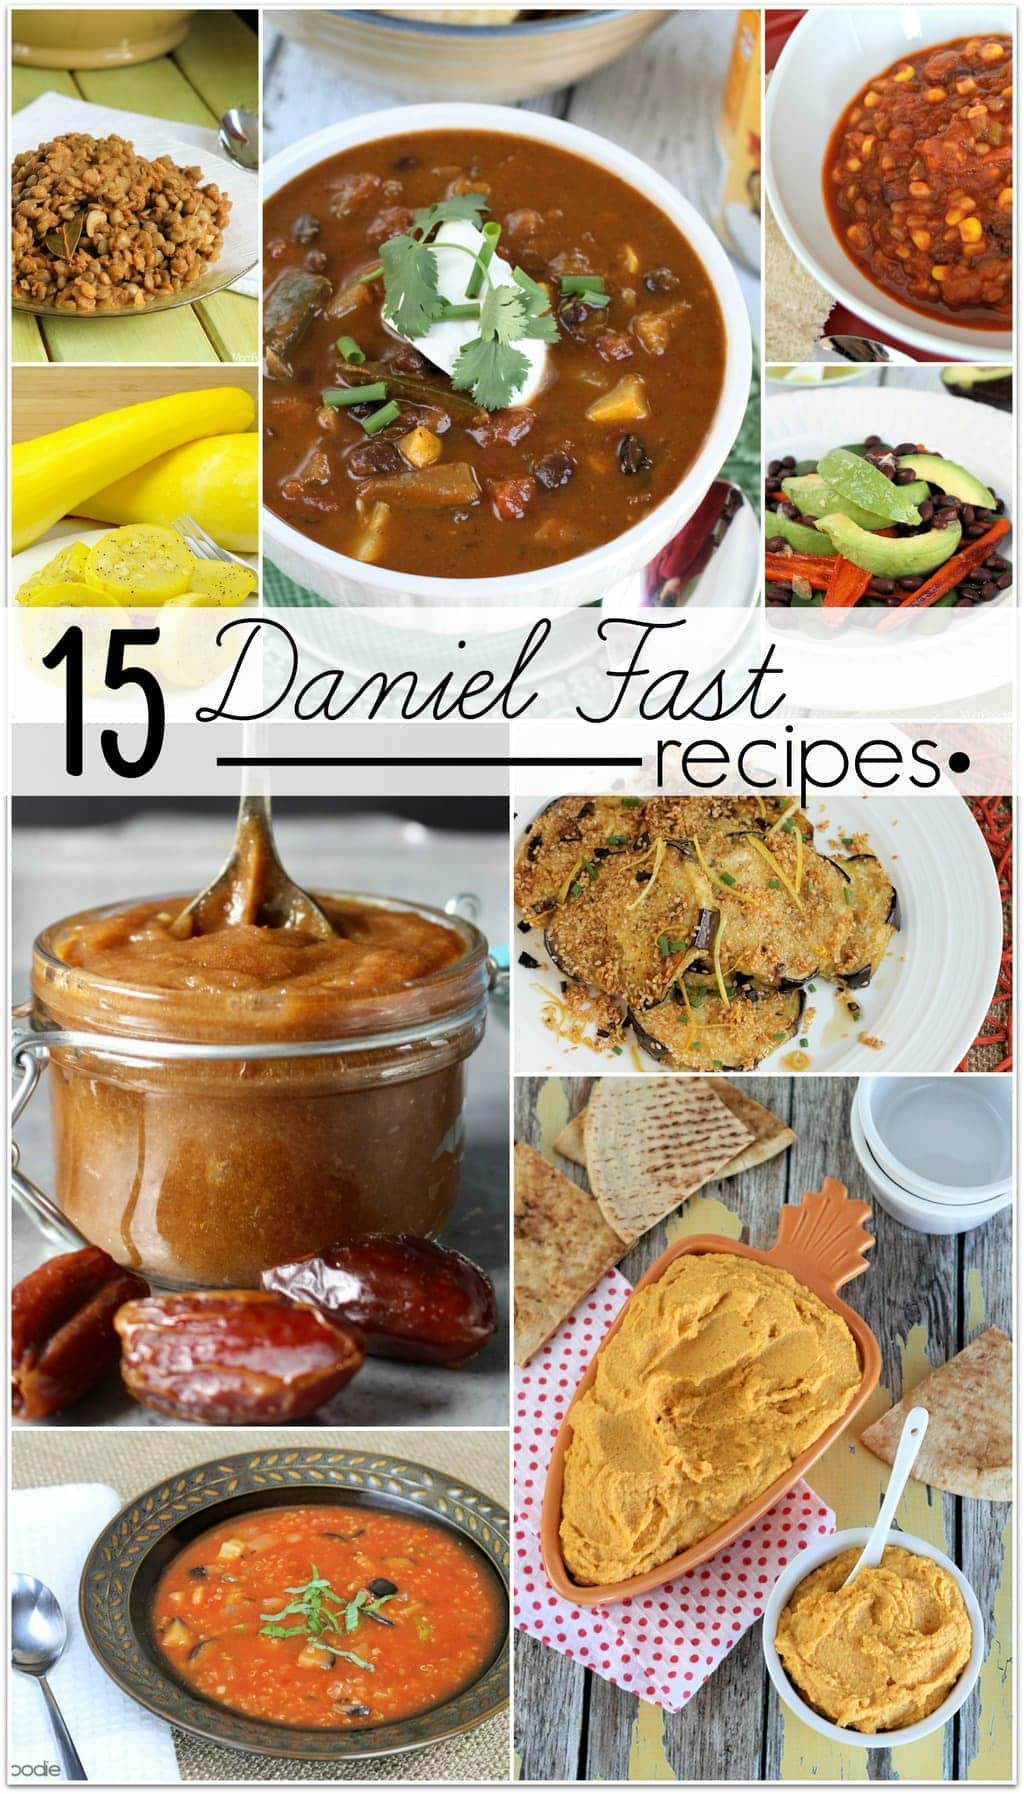 I've been collecting Daniel Fast recipes for a few years now. My husband and I have been doing the Daniel Fast every year in January. It started with our church taking part in it, and we loved it so much we have continued.